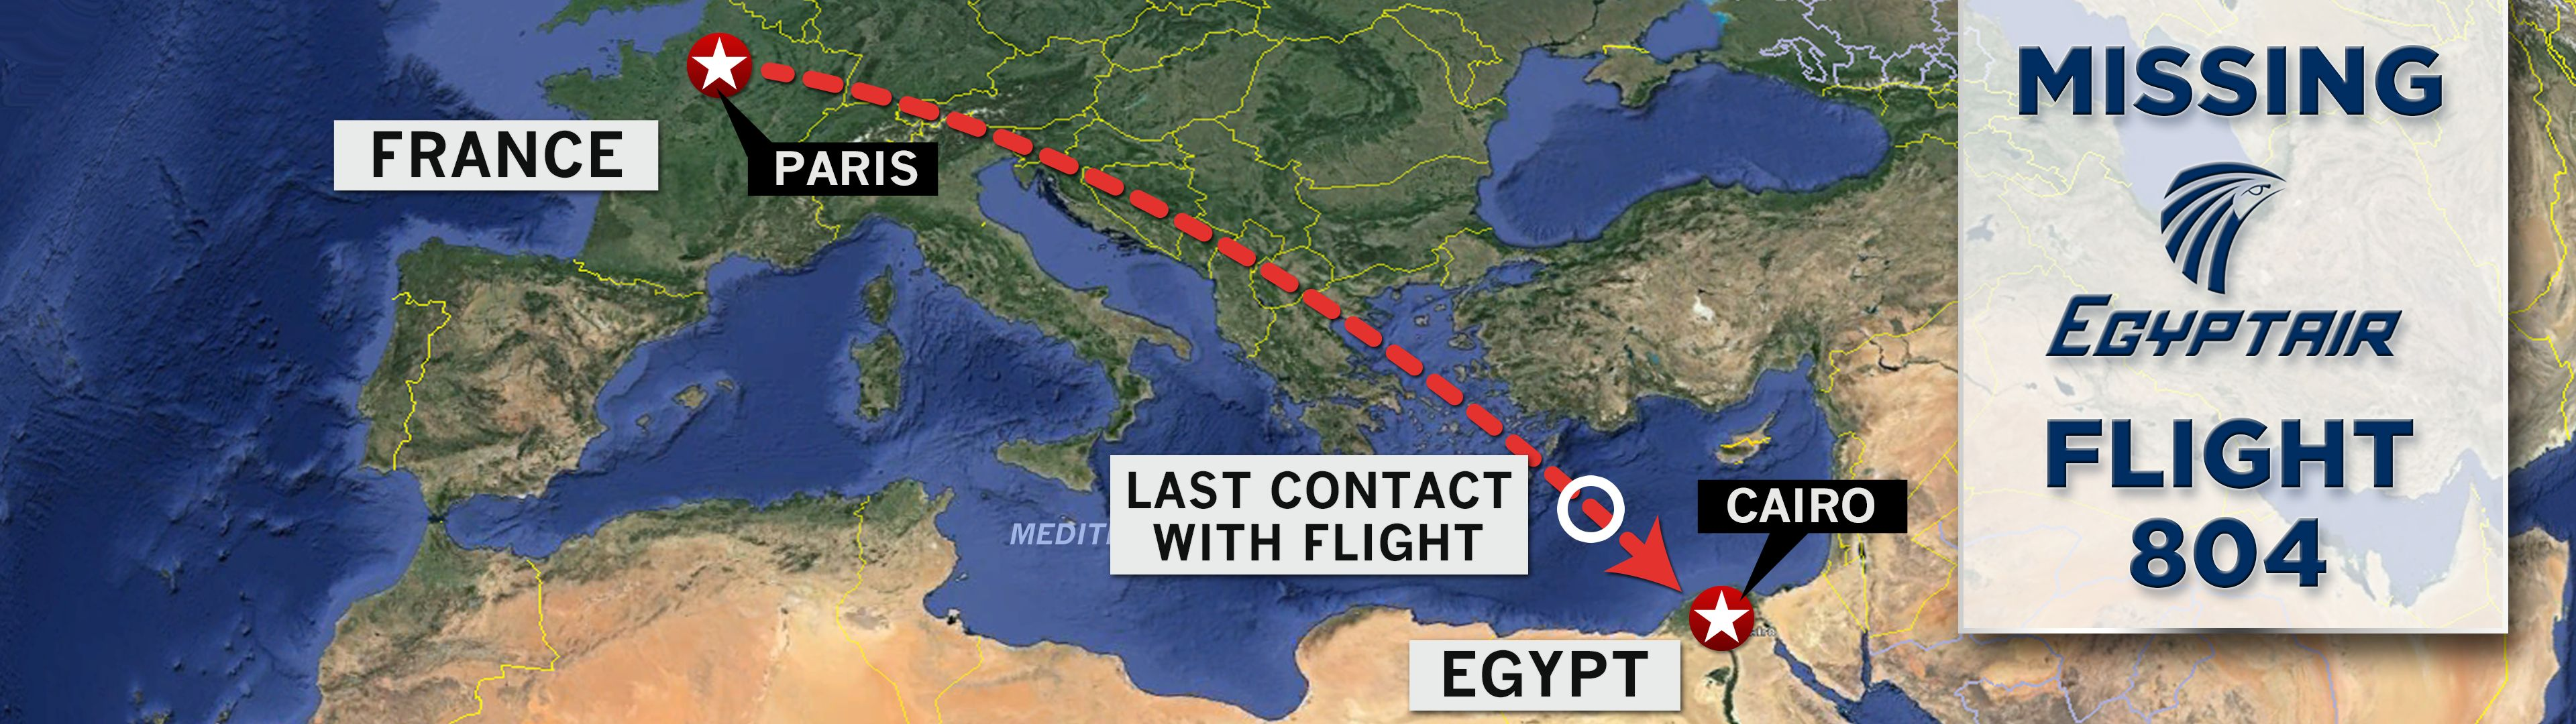 What We Know About Missing EgyptAir Flight MS So Far - Airline flights map of france to us